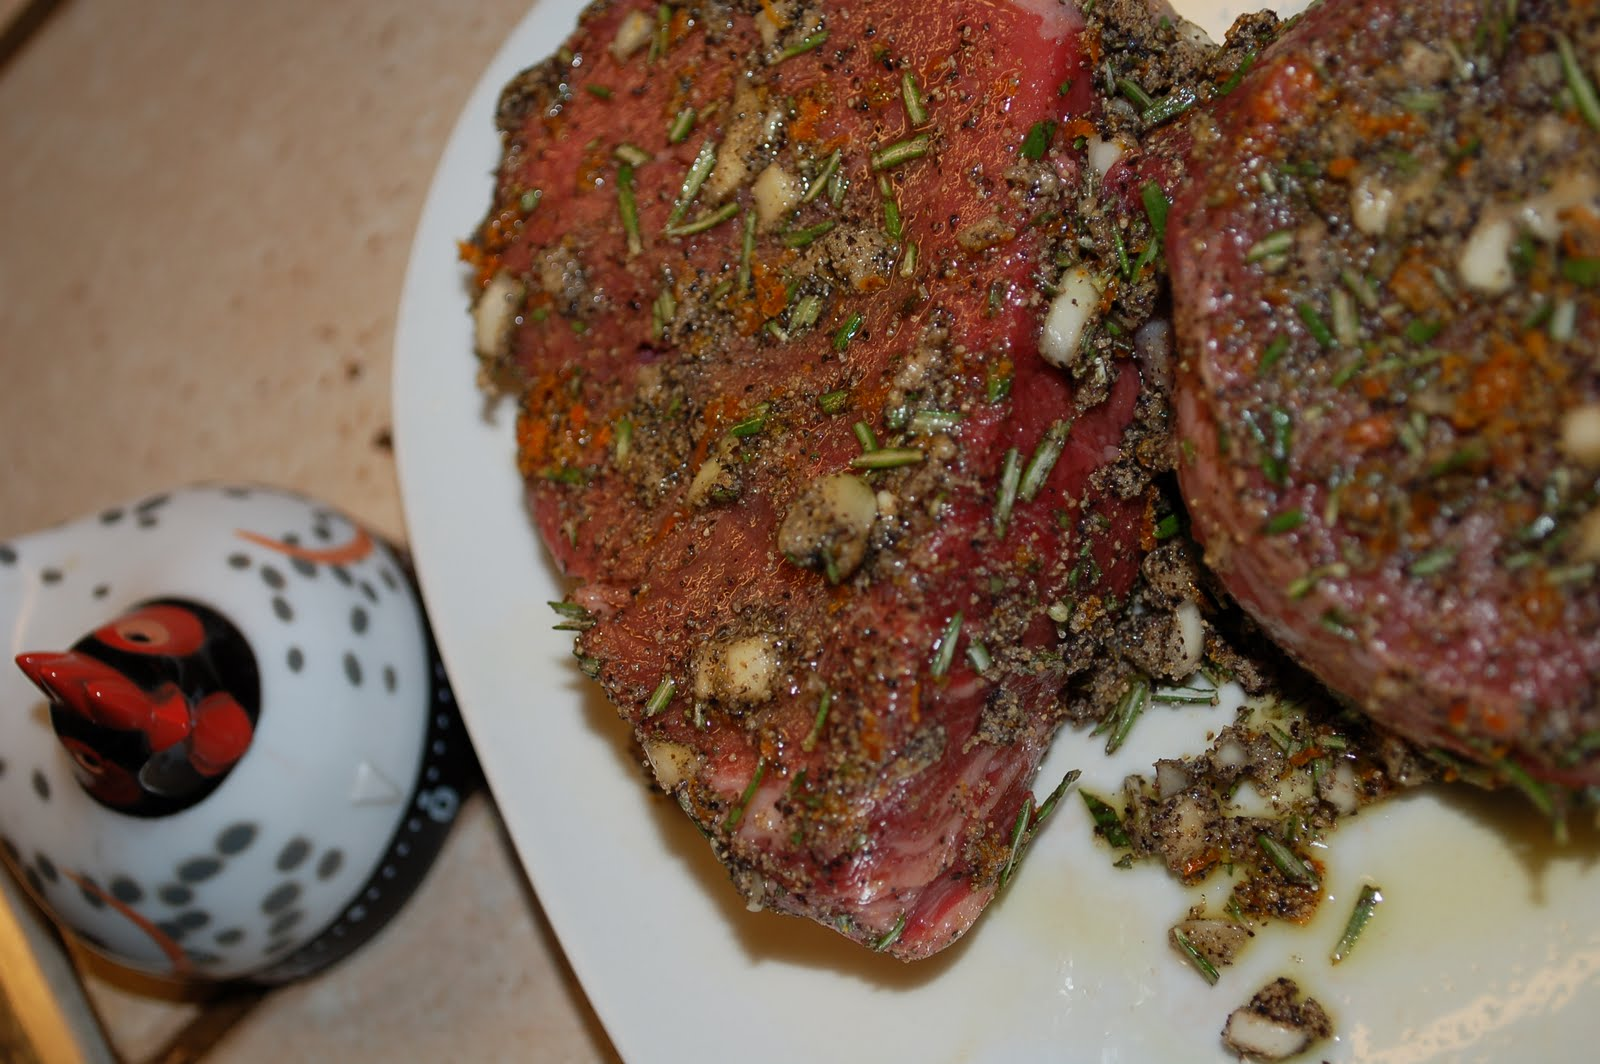 Herb and Spice Roasted Beef Tenderloin with Red Wine